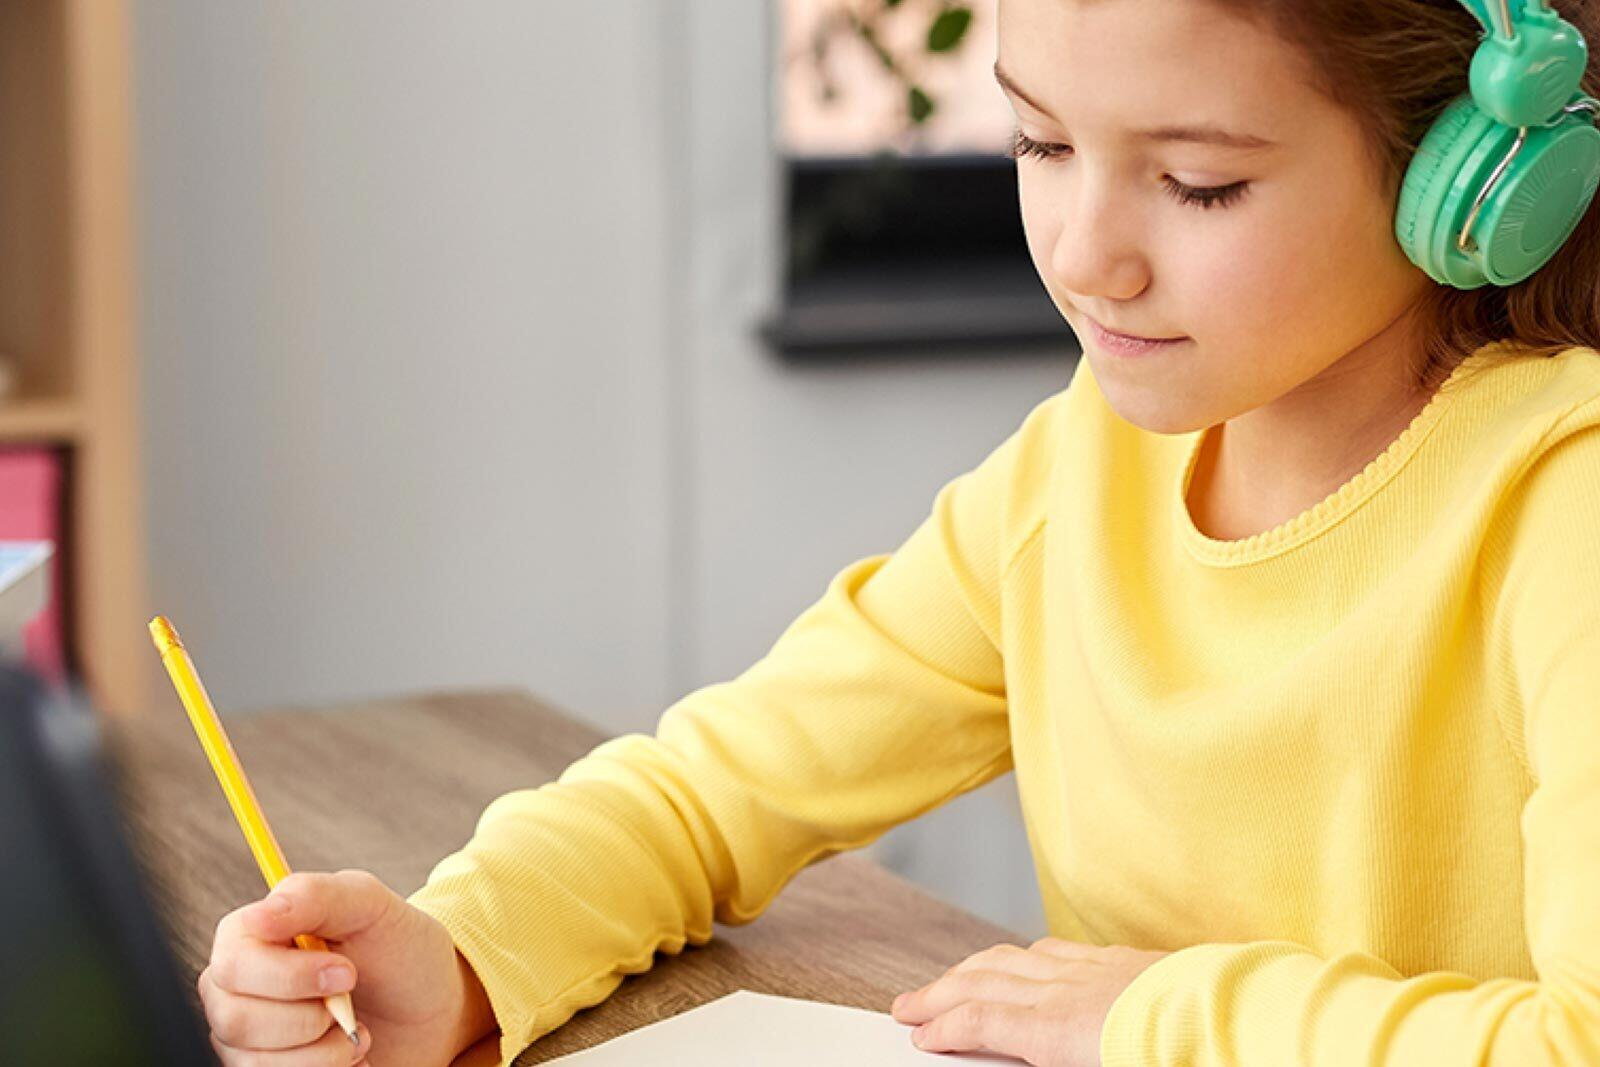 A child is studying at a desk with her headphones on.